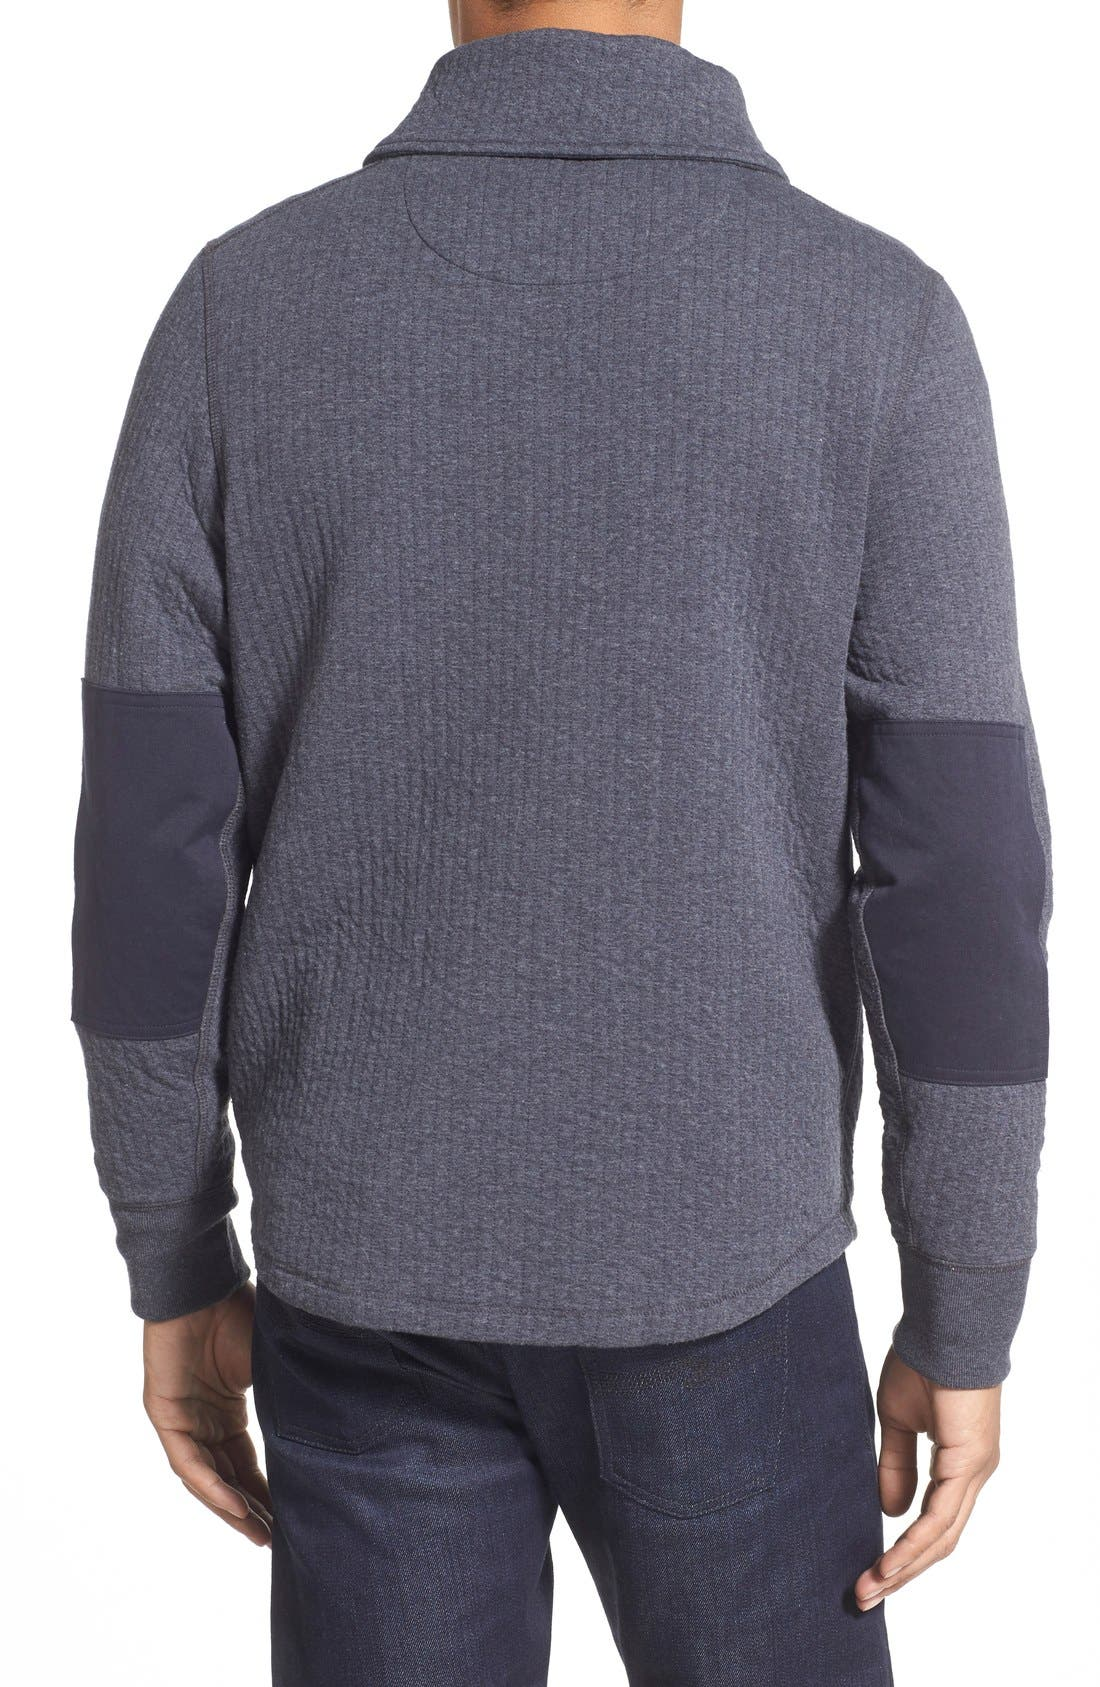 'Barnes' Shawl Collar Jersey Sweater,                             Alternate thumbnail 2, color,                             True Navy